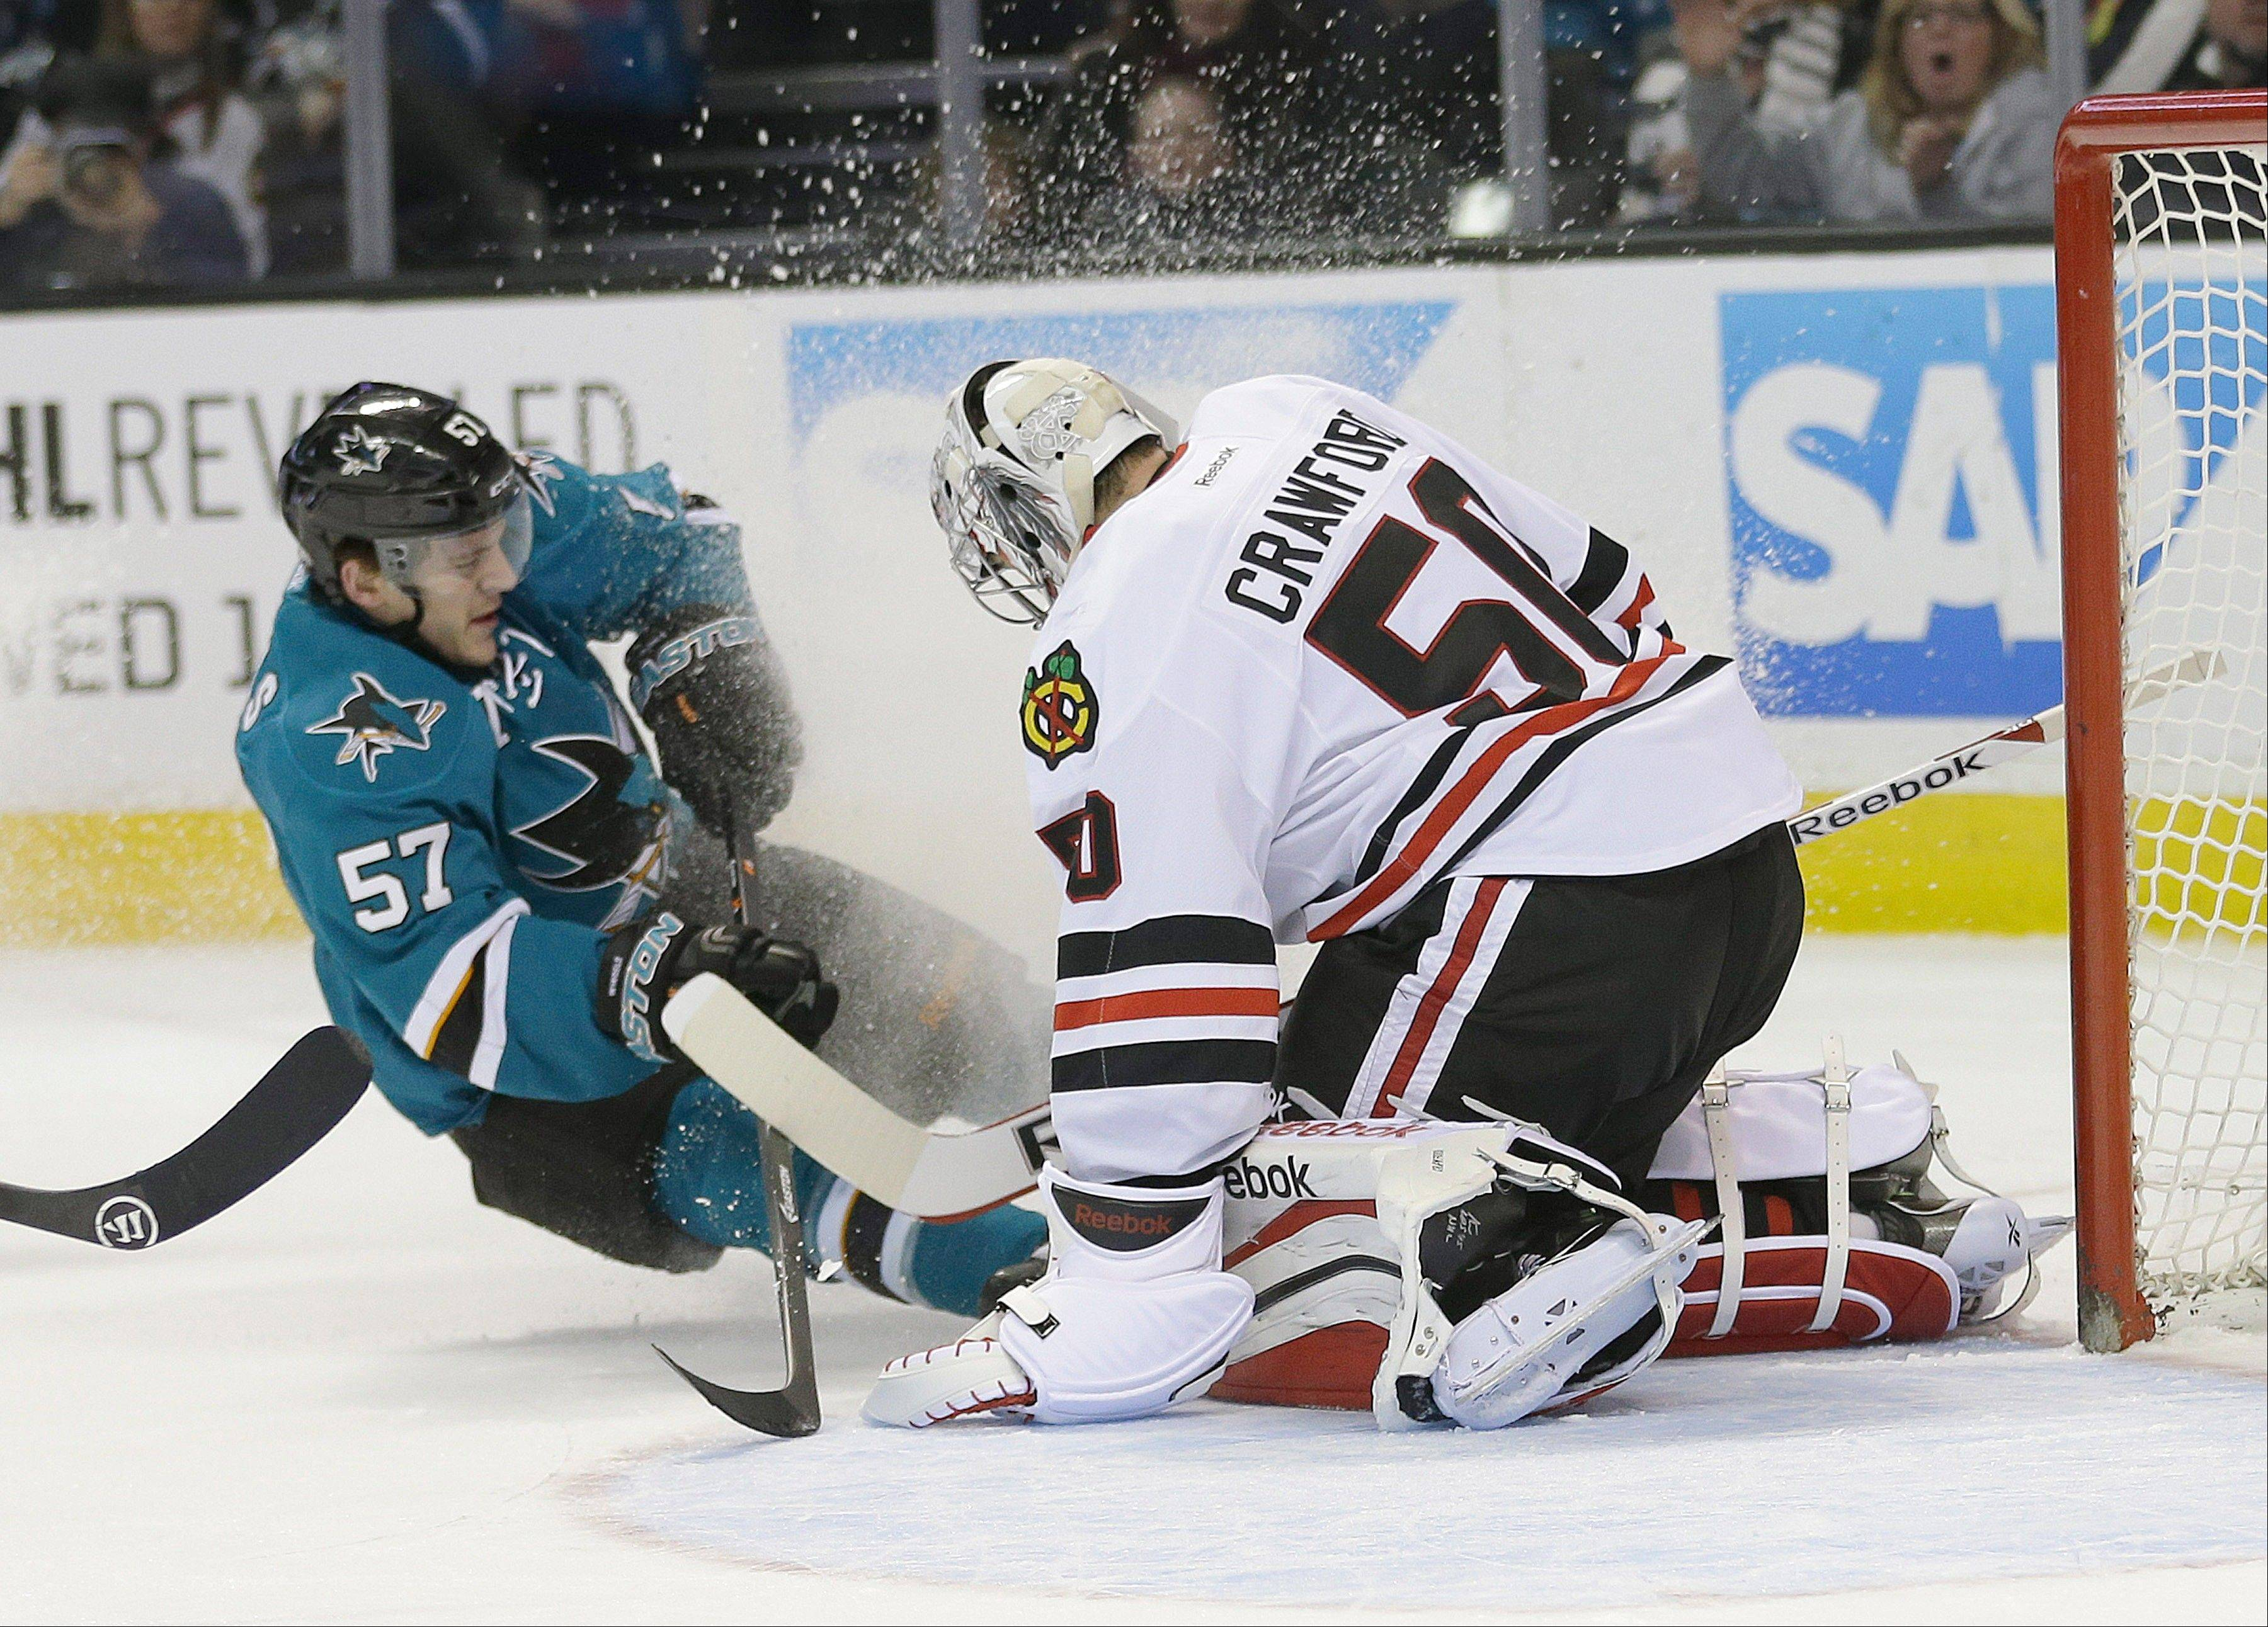 Hawks goalie Corey Crawford blocks a shot from the Sharks� Tommy Wingels during the first period Saturday in San Jose.